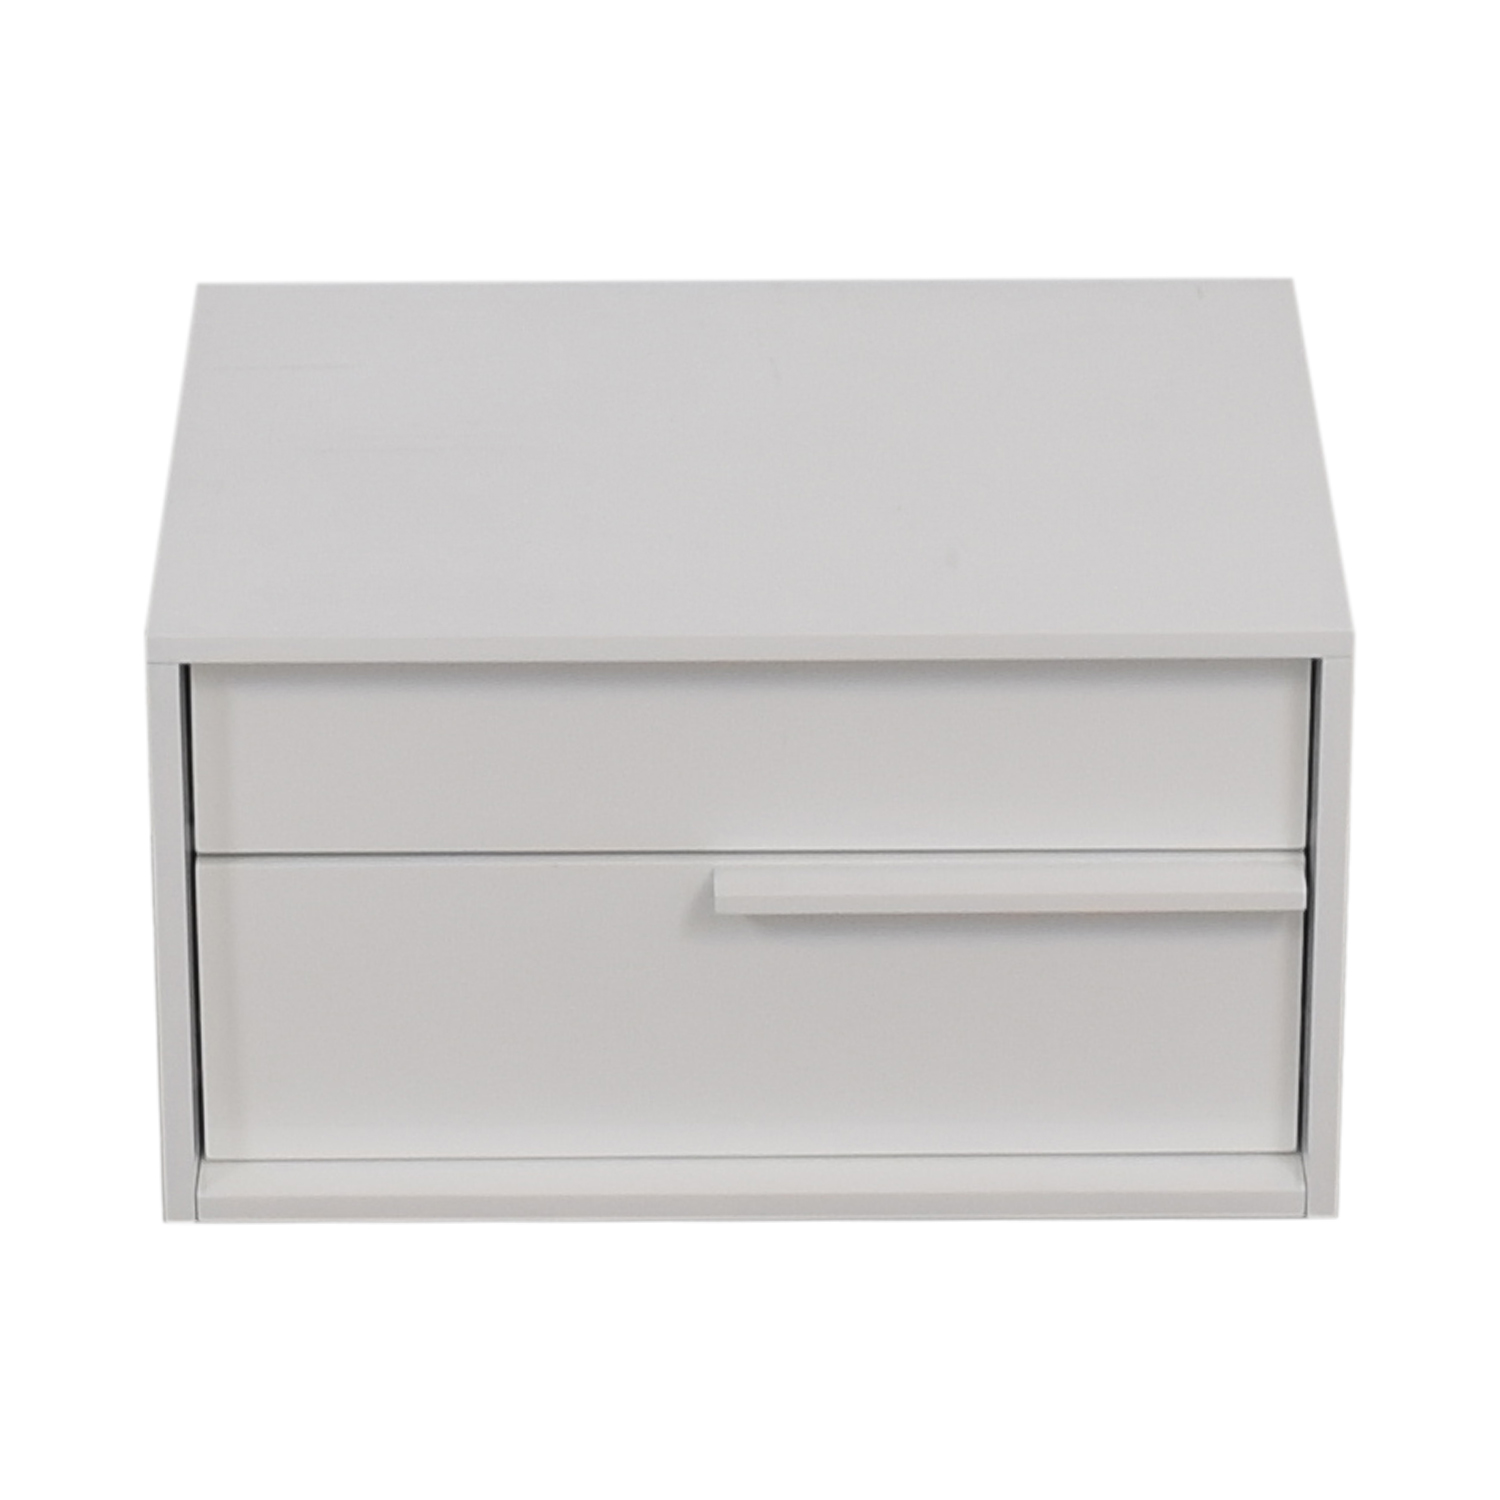 Modloft Modloft White Two-Drawer Night Stand price